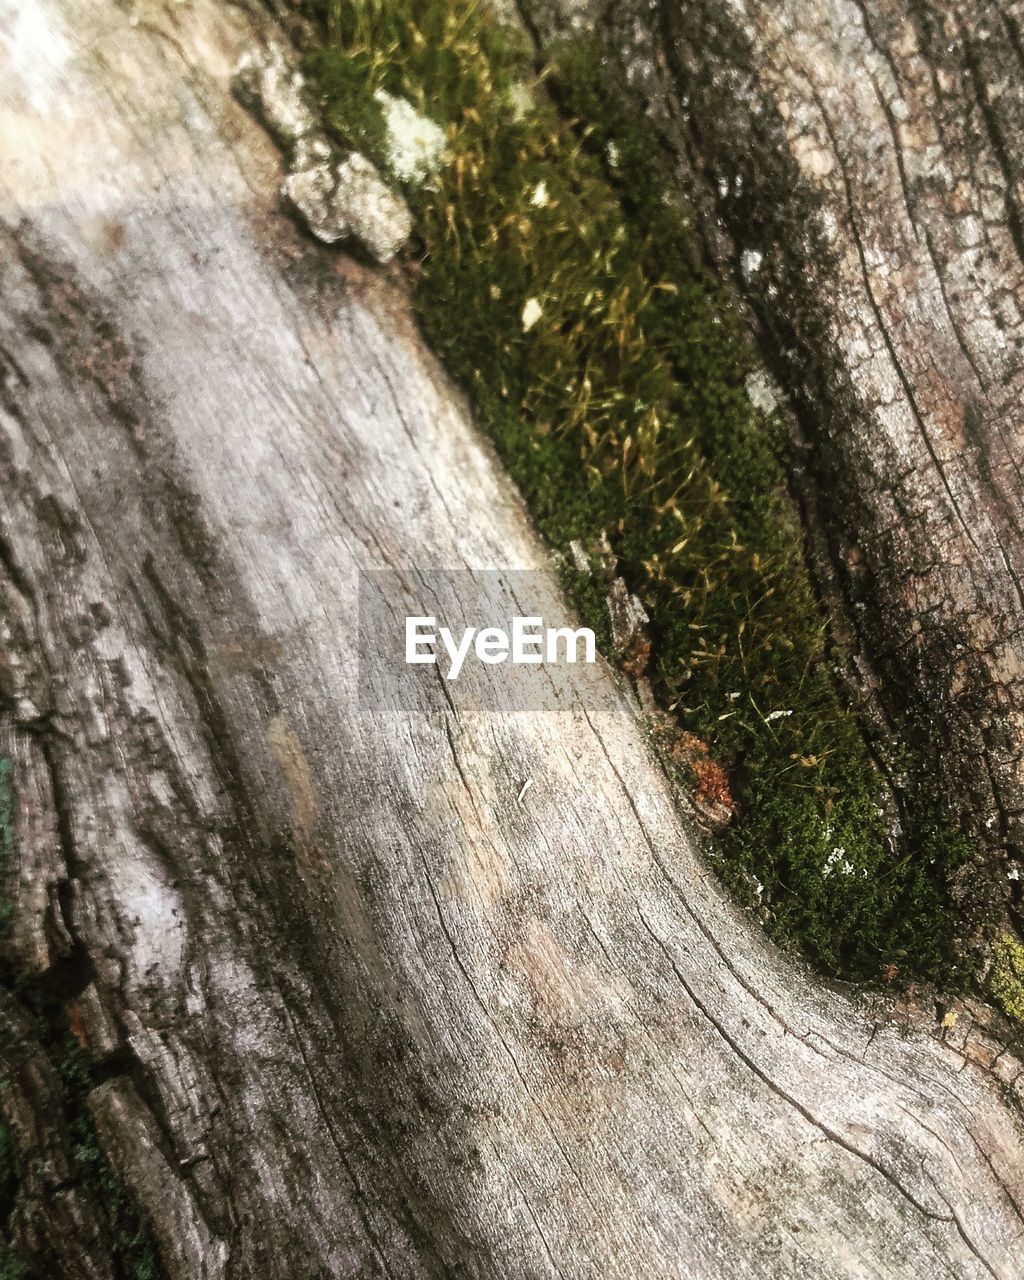 tree trunk, tree, textured, nature, wood - material, growth, bark, day, outdoors, close-up, rough, no people, moss, beauty in nature